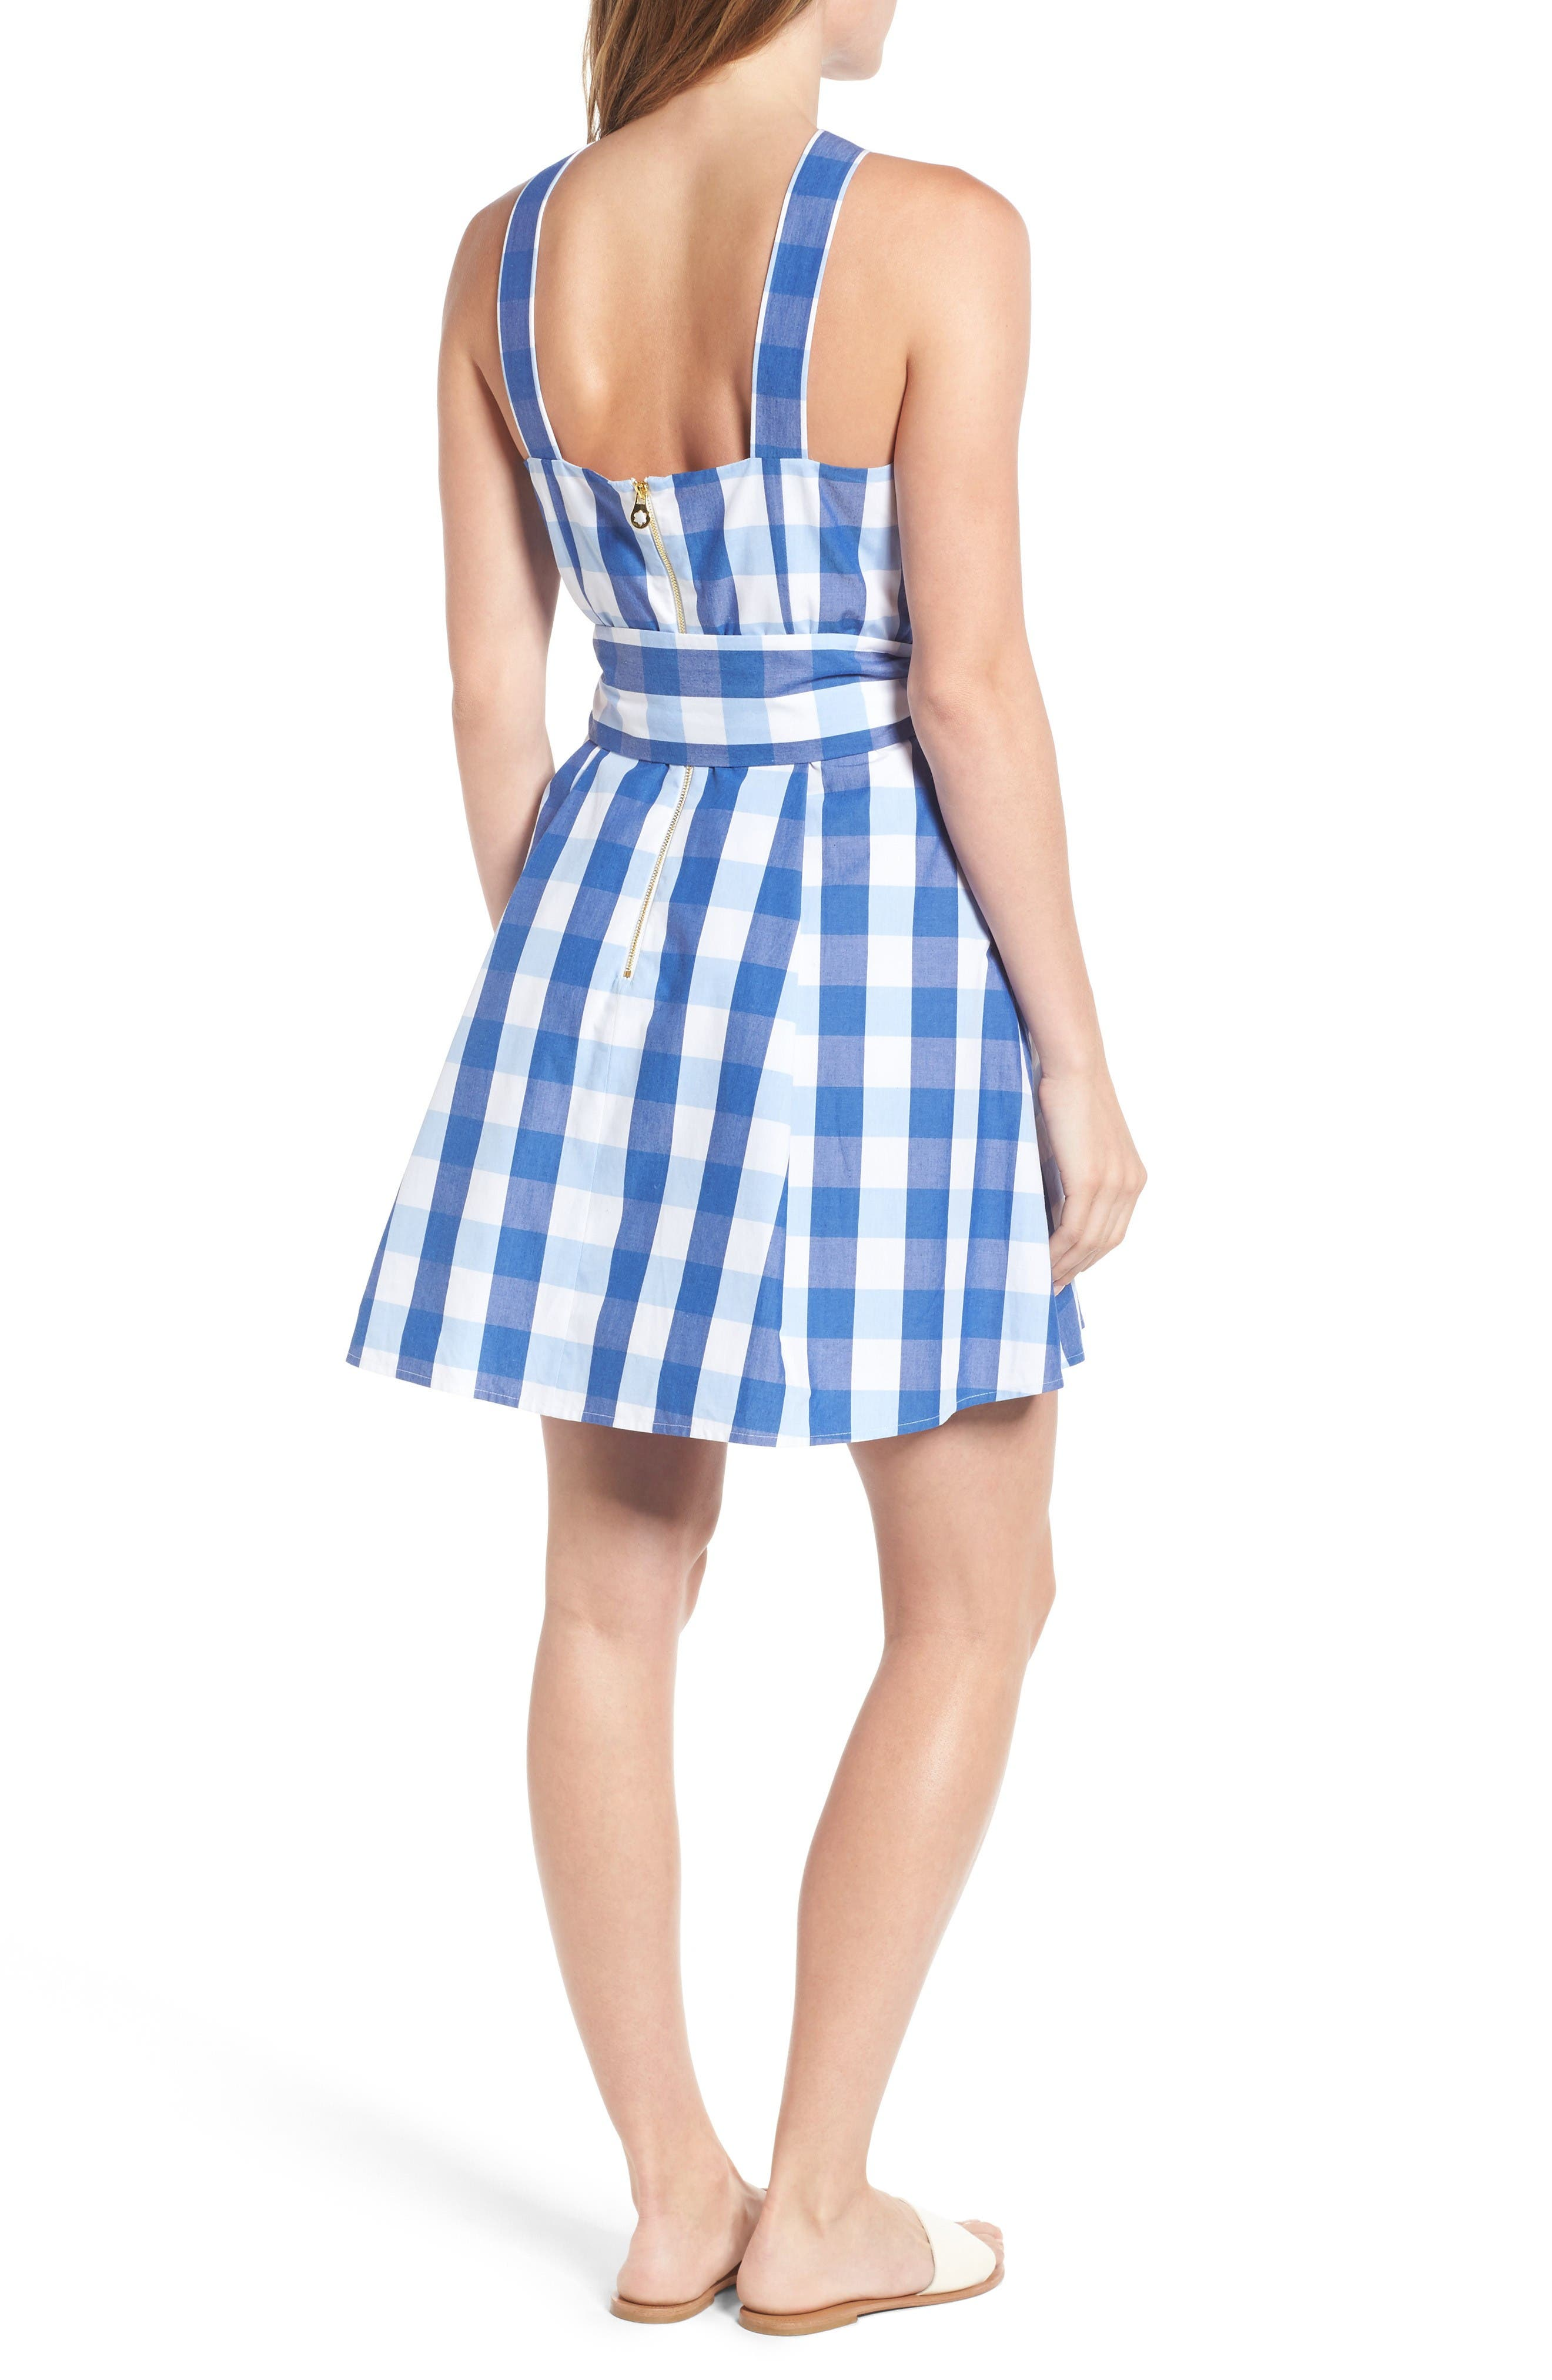 Mary Beth Cotton Sundress,                             Alternate thumbnail 4, color,                             Blue Parton Check